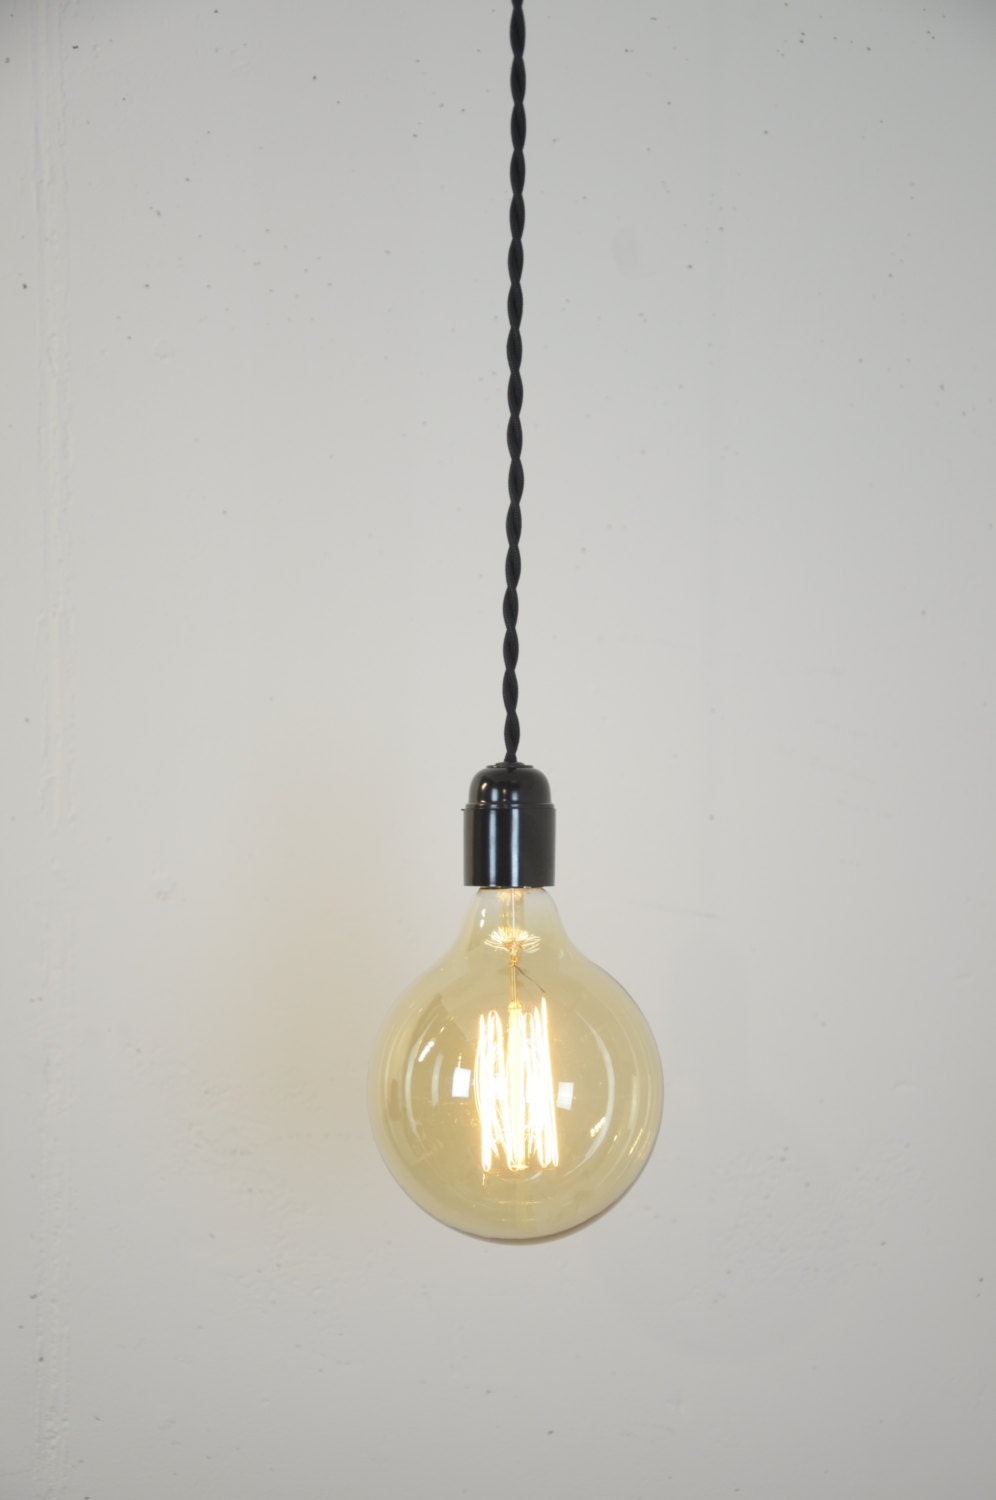 Pendant Light Black Twisted Cloth Covered Cord Wire Hanging Lamp Modern